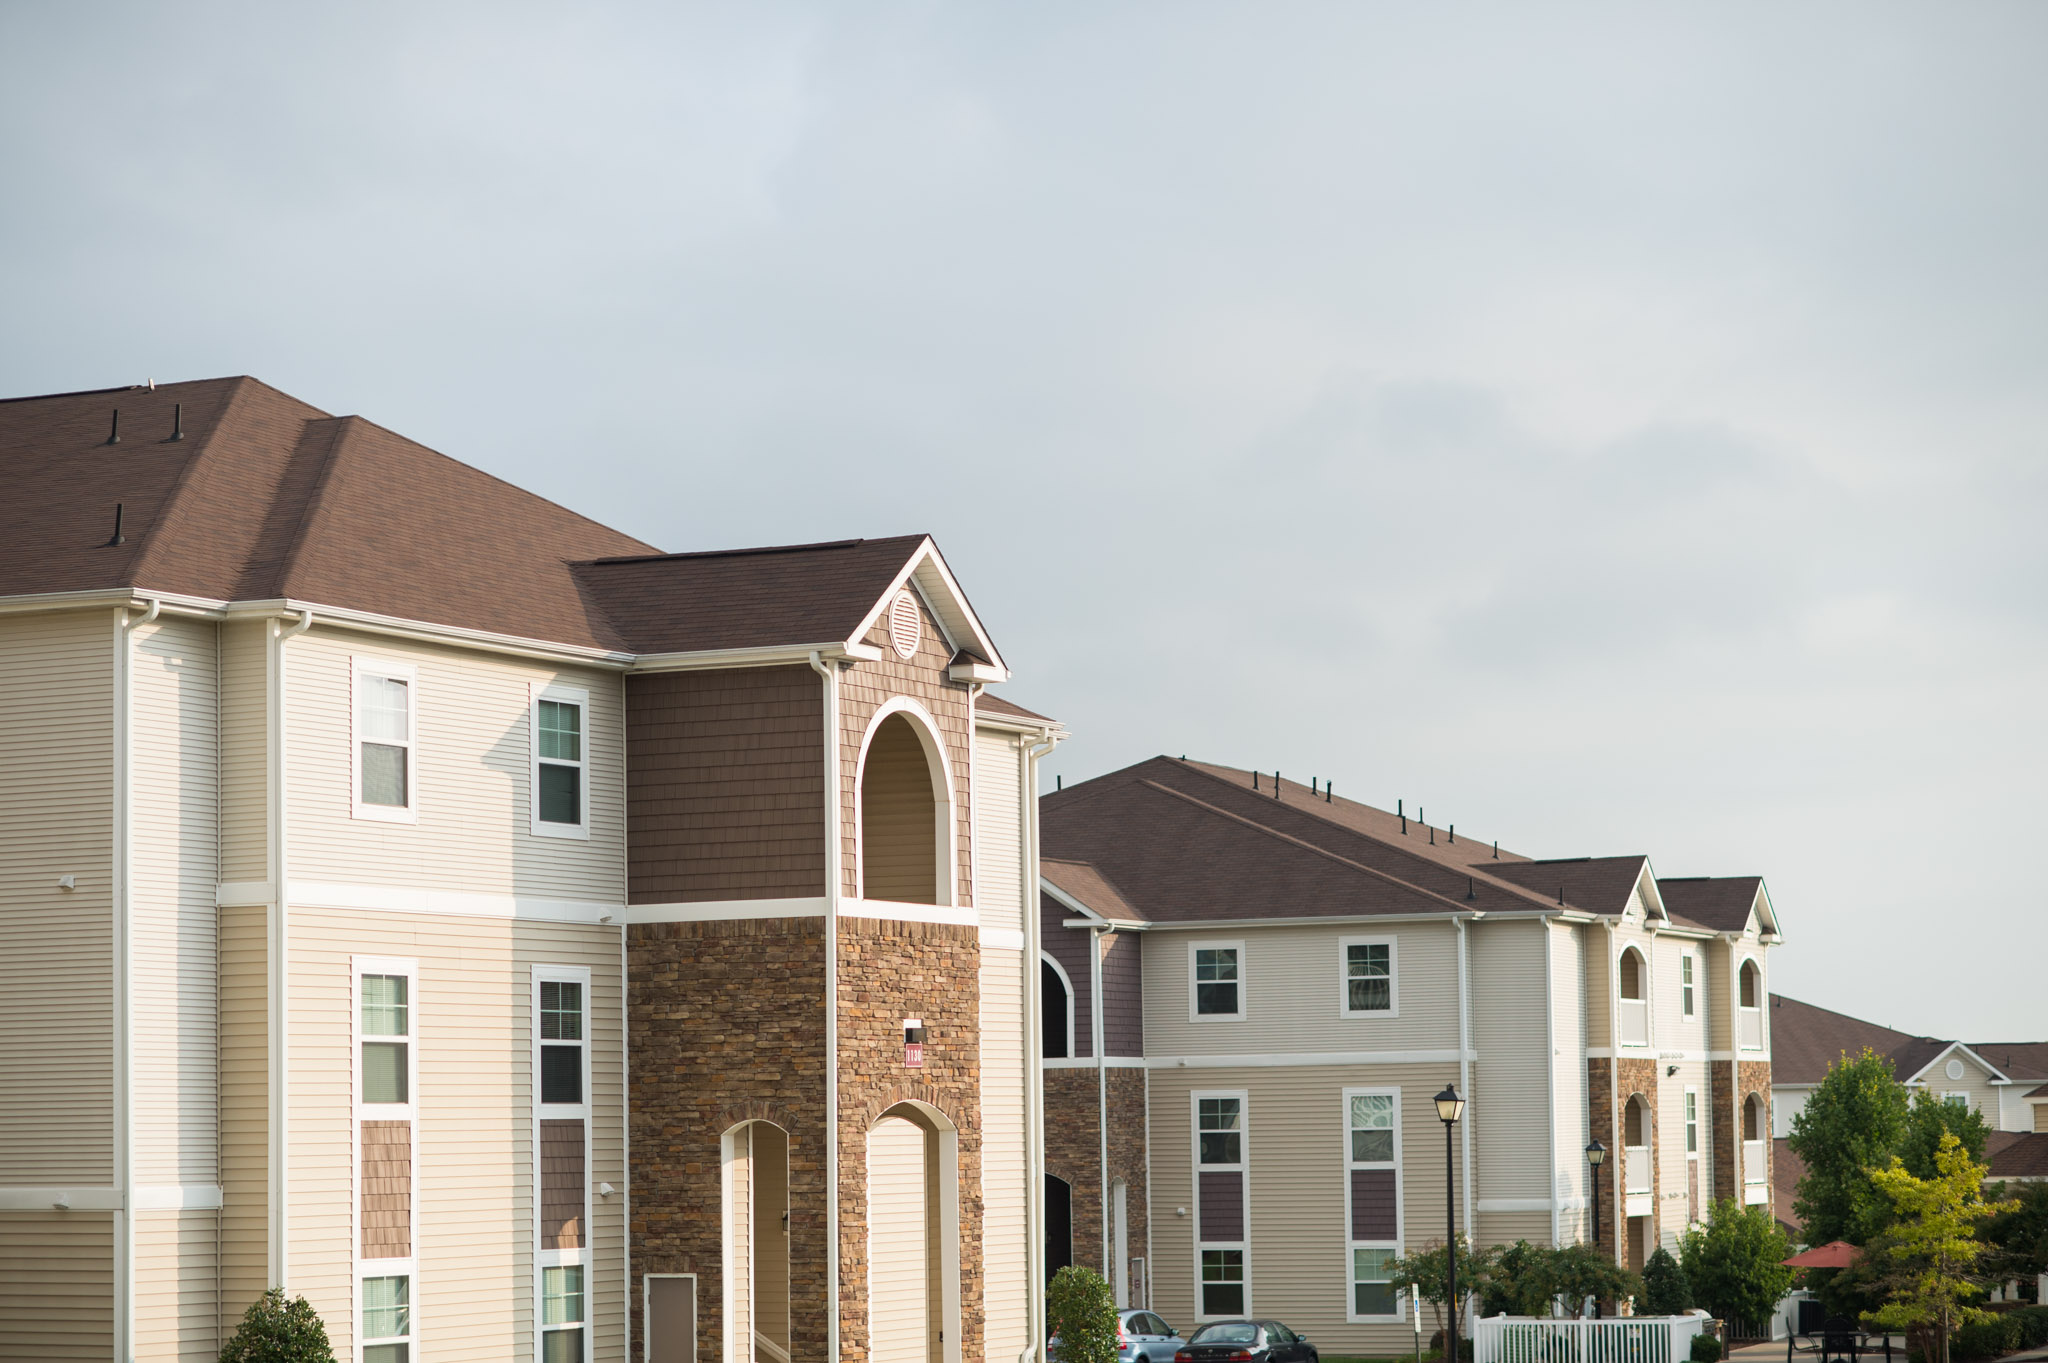 North 38 Exteriors for Web-1060.jpg